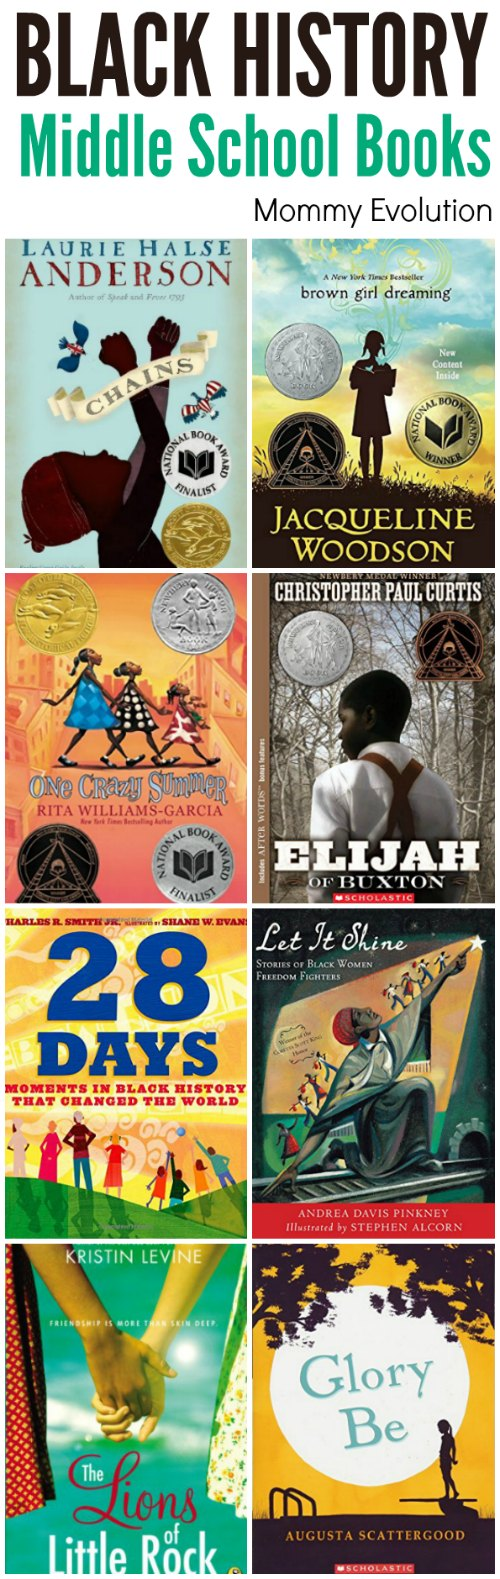 Middle School Books for Black History Month | Mommy Evolution #blackhistory #middleschool #reading